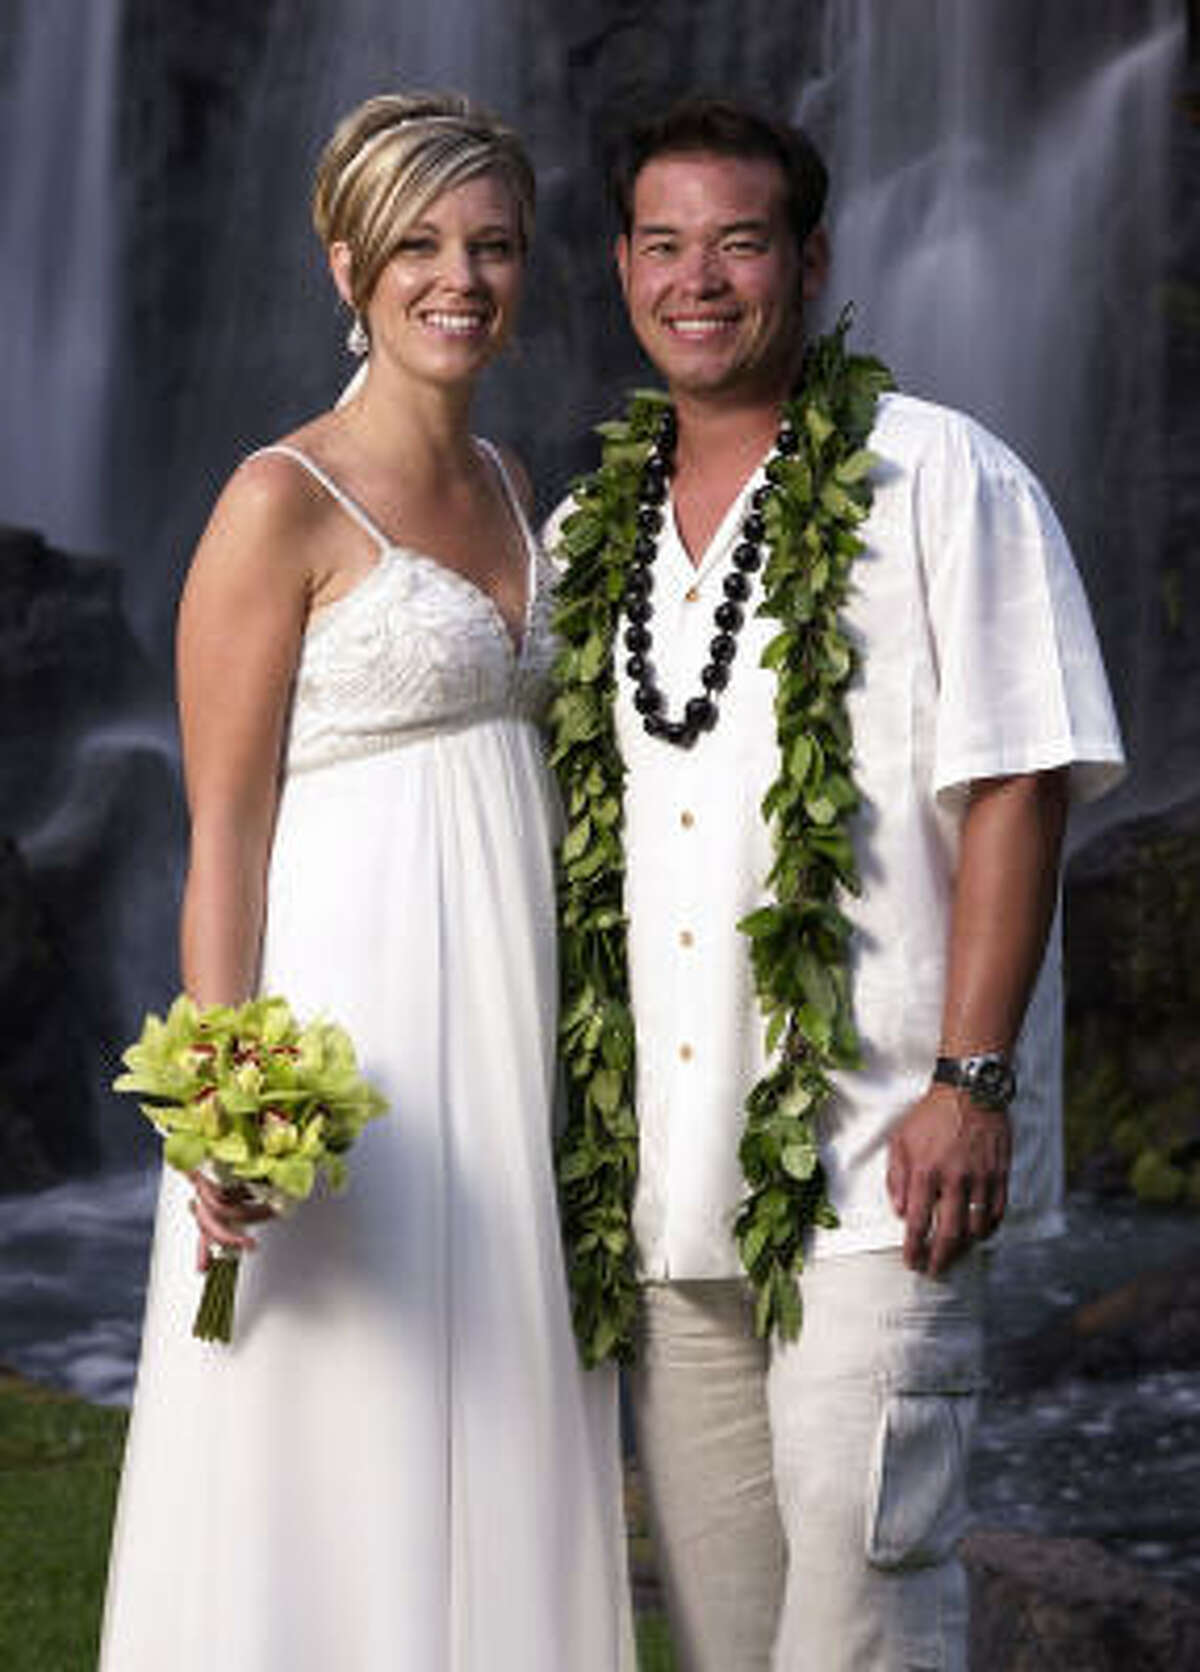 Reality TV stars, Jon and Kate Gosselin announced tonight they will be divorcing. The couple may be the divorce du jour, but celebrity and divorce go hand and hand. Take a look at other parents who have called it quits.